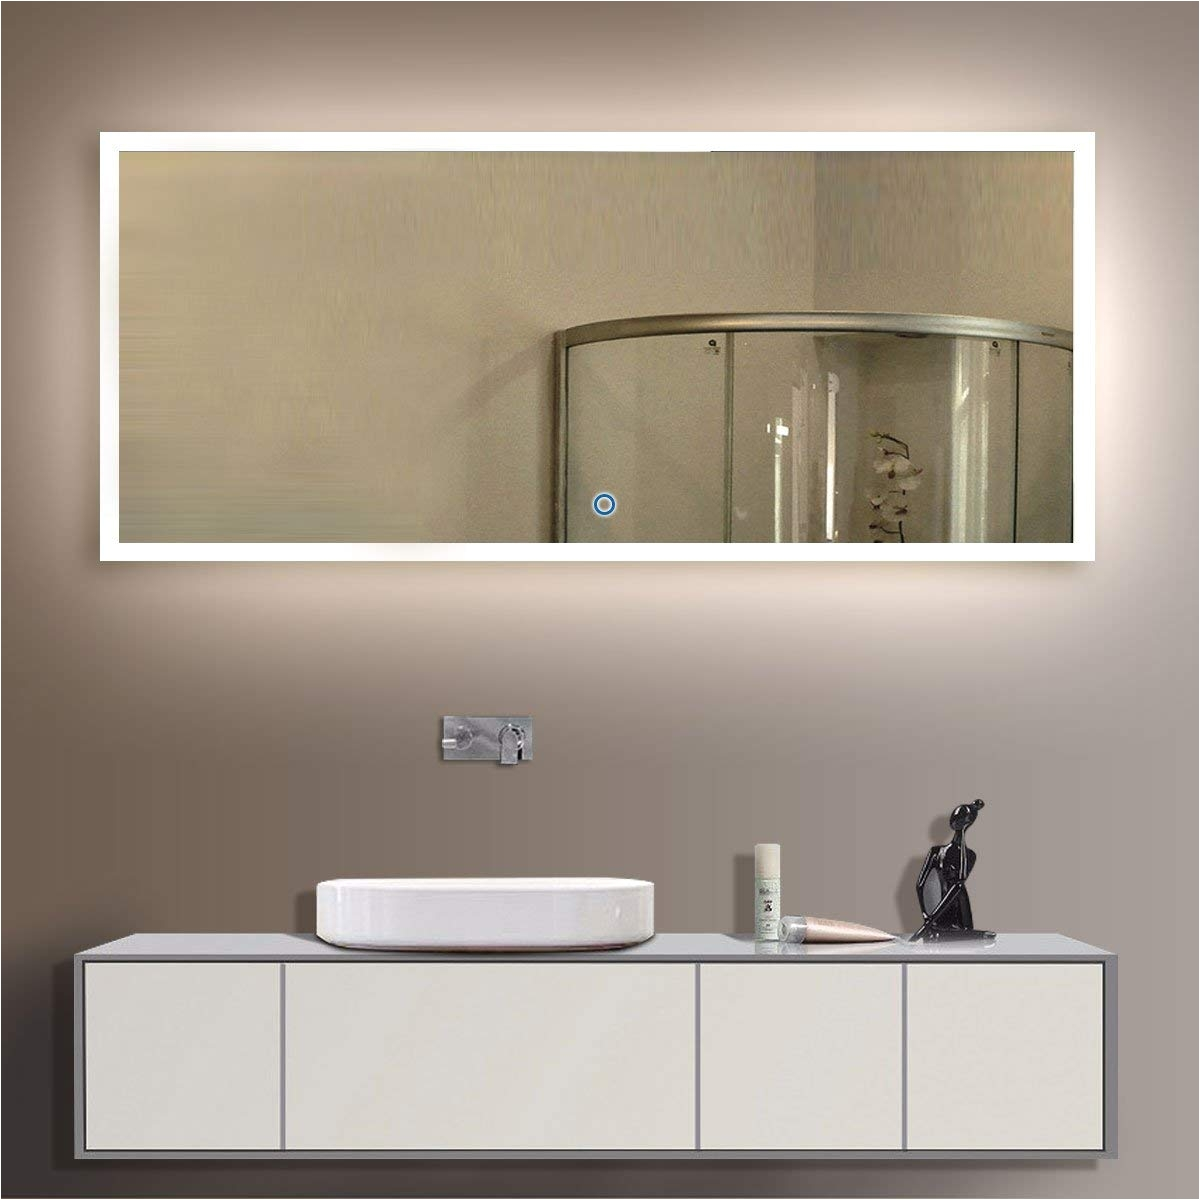 amazon com bhbl 84 x 40 in led backlit mirror wall mounted lighted makeup vanity mirror with touch button n031 a home kitchen